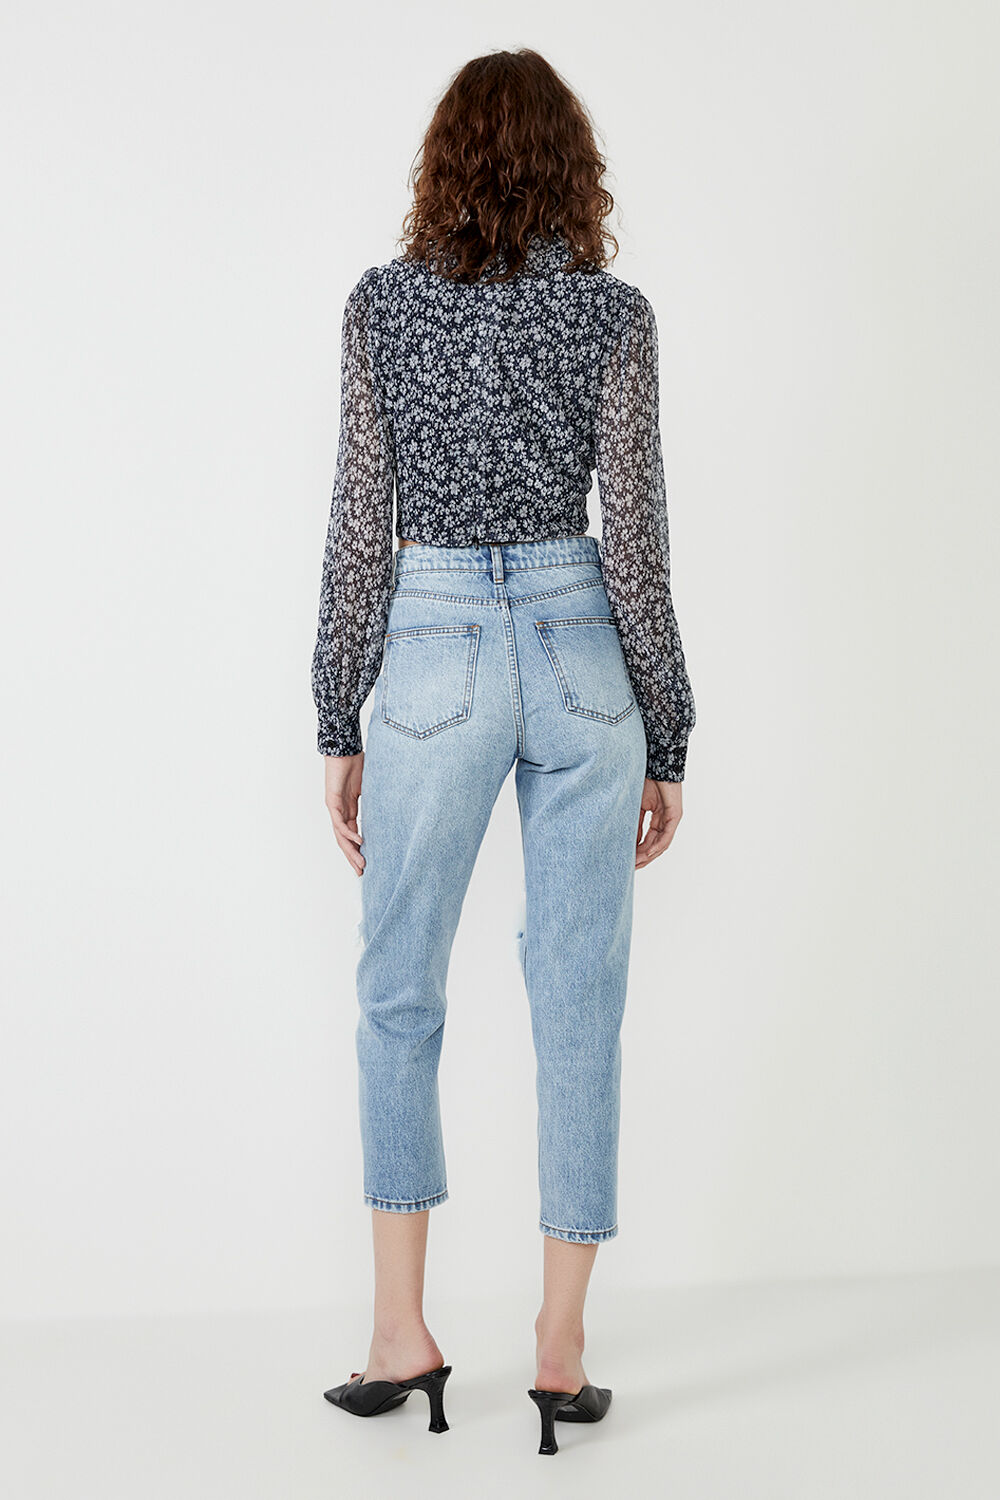 SOFT FLORAL BLOUSE in colour GRAY DAWN